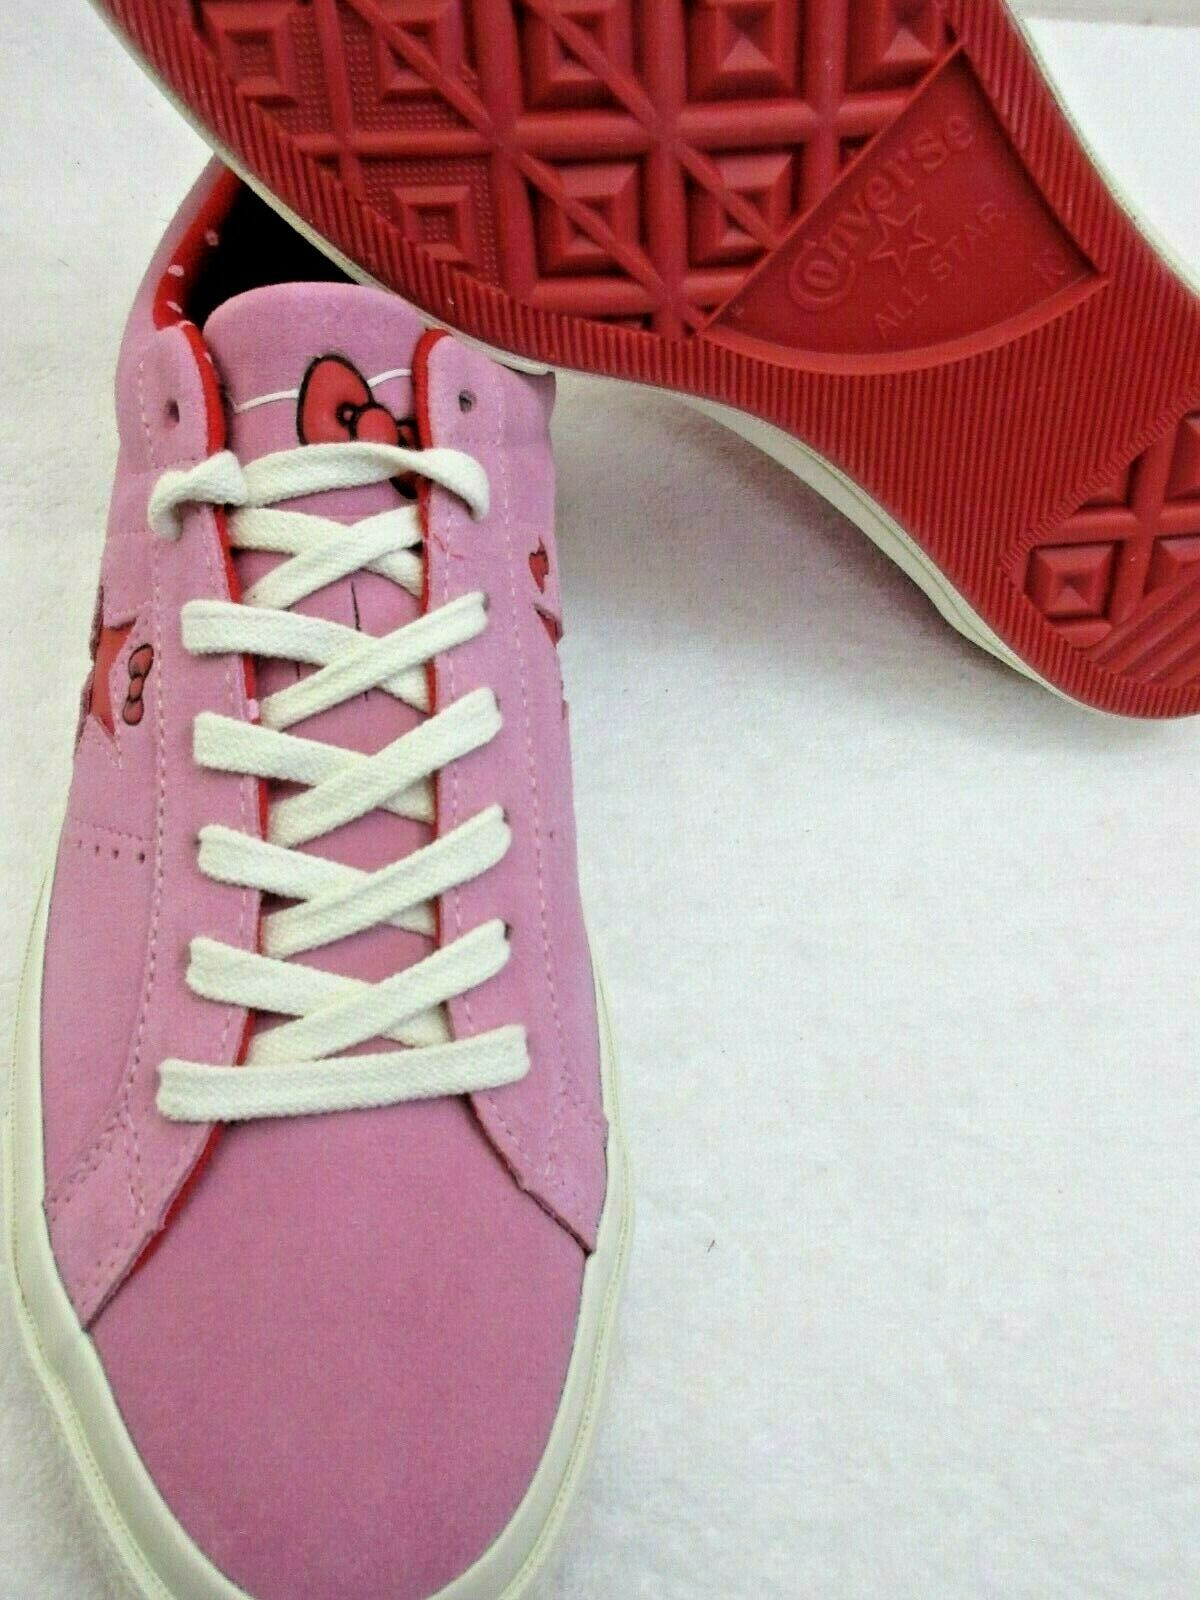 Converse One Star Ox Mens Hello Kitty Pink Prism Red Suede Shoes Size 10 New  image 4